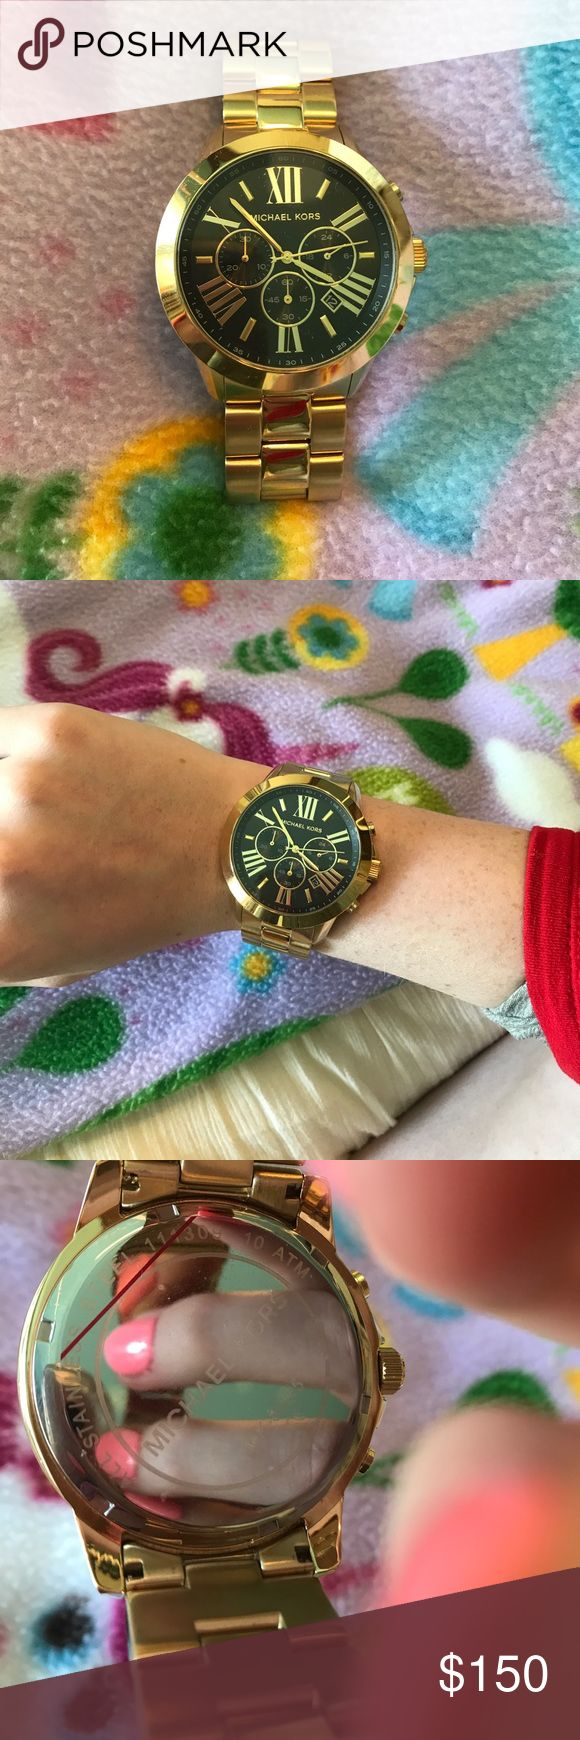 Michael Kors Oversized Boyfriend Watch Only worn twice, perfect condition. No scratches or wearing. Still has plastic covering on the back of the watch. Needs new battery. Make an offer!! ♥️♥️ Michael Kors Accessories Watches